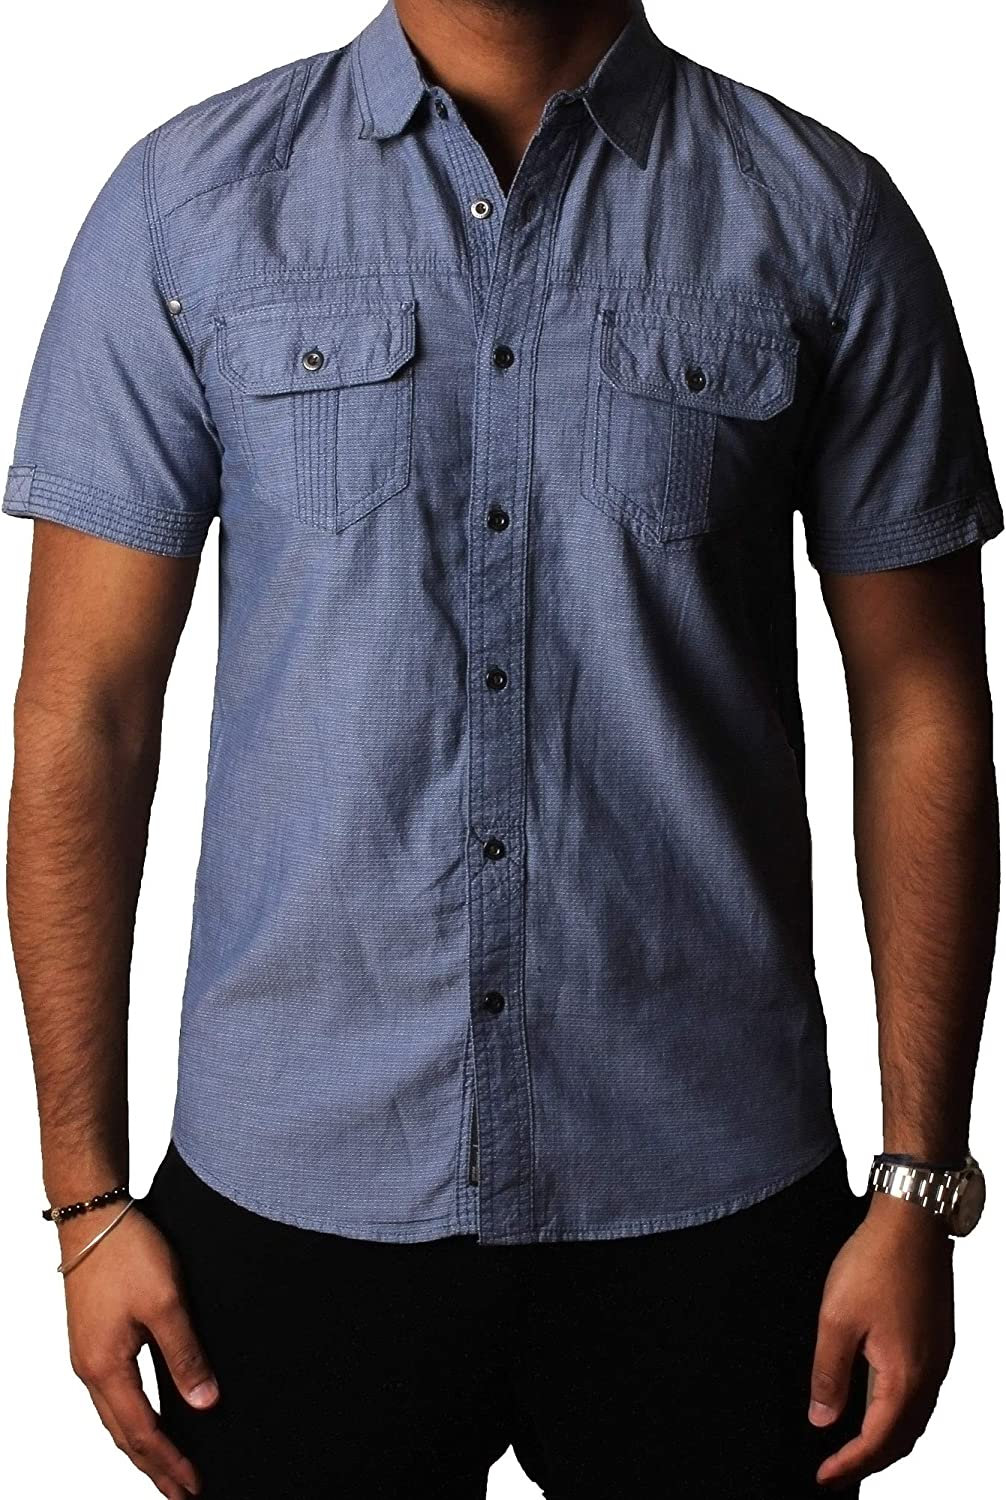 Hombres Camisa DISSIDENT Diseñador Jacquard Chambray Casual ...